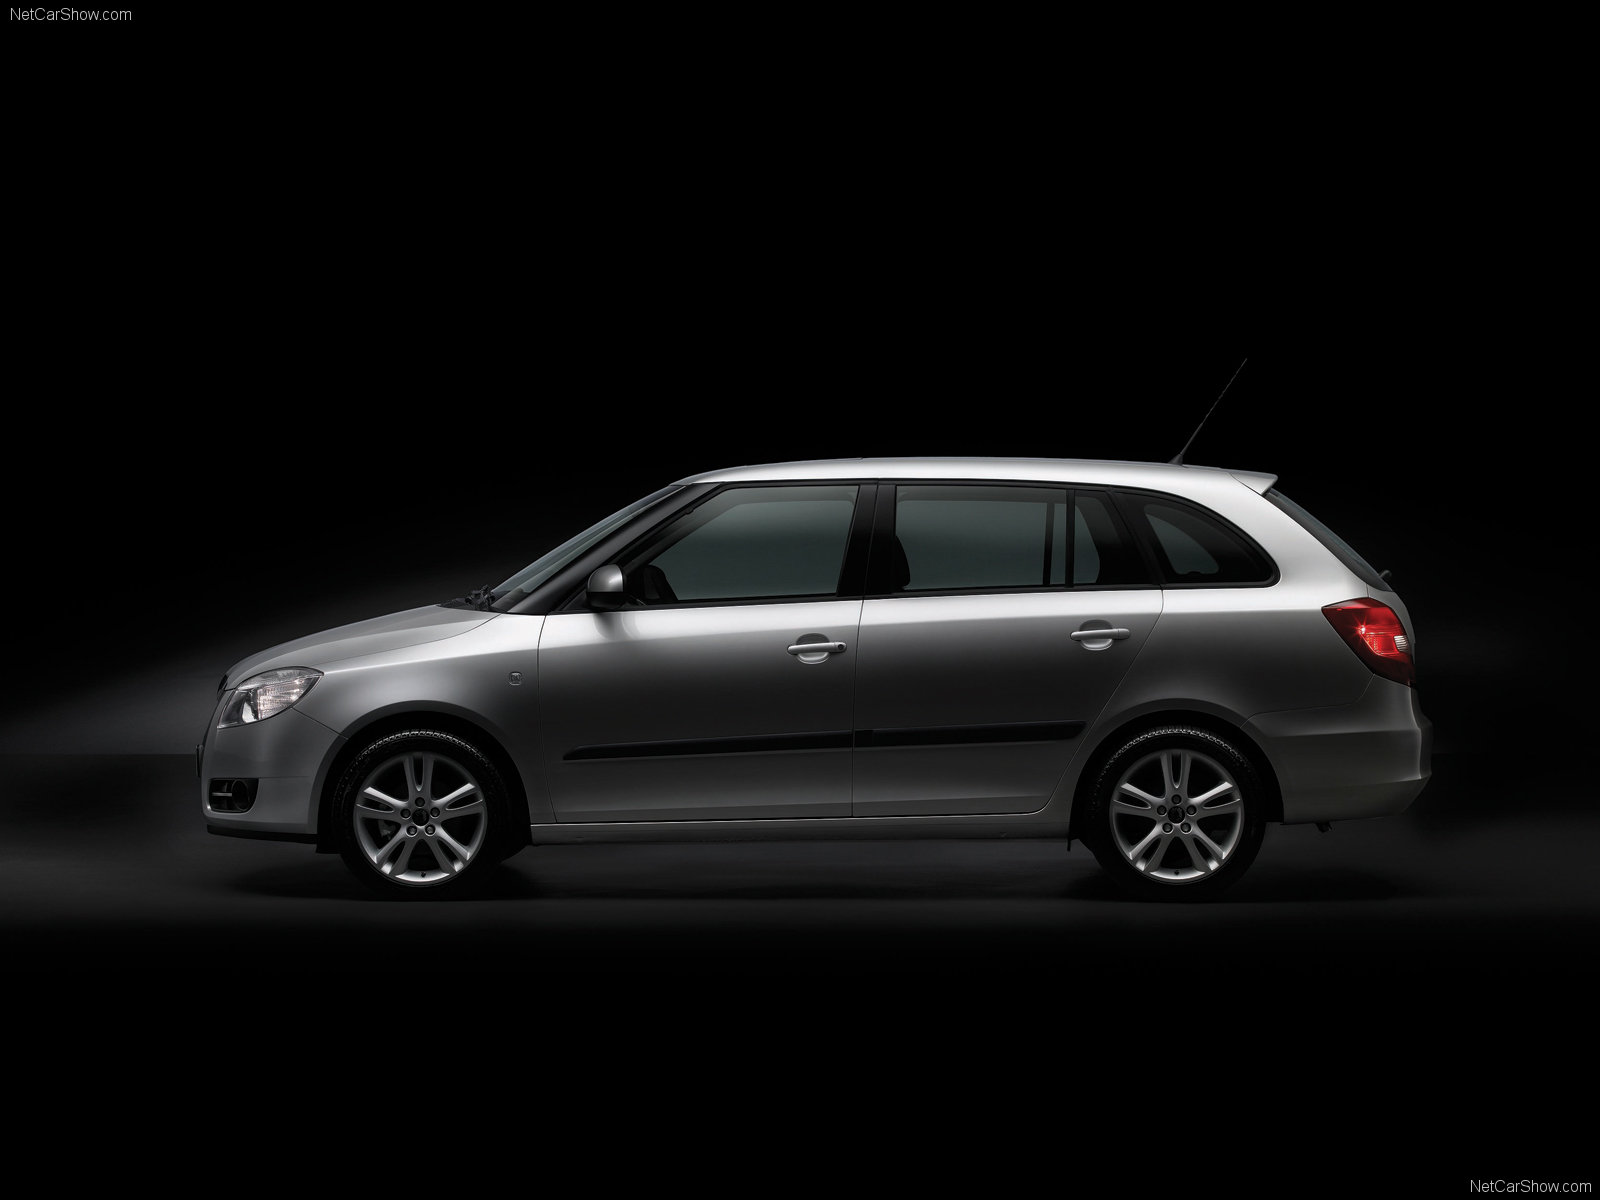 Skoda Fabia Hatchback photo 45833